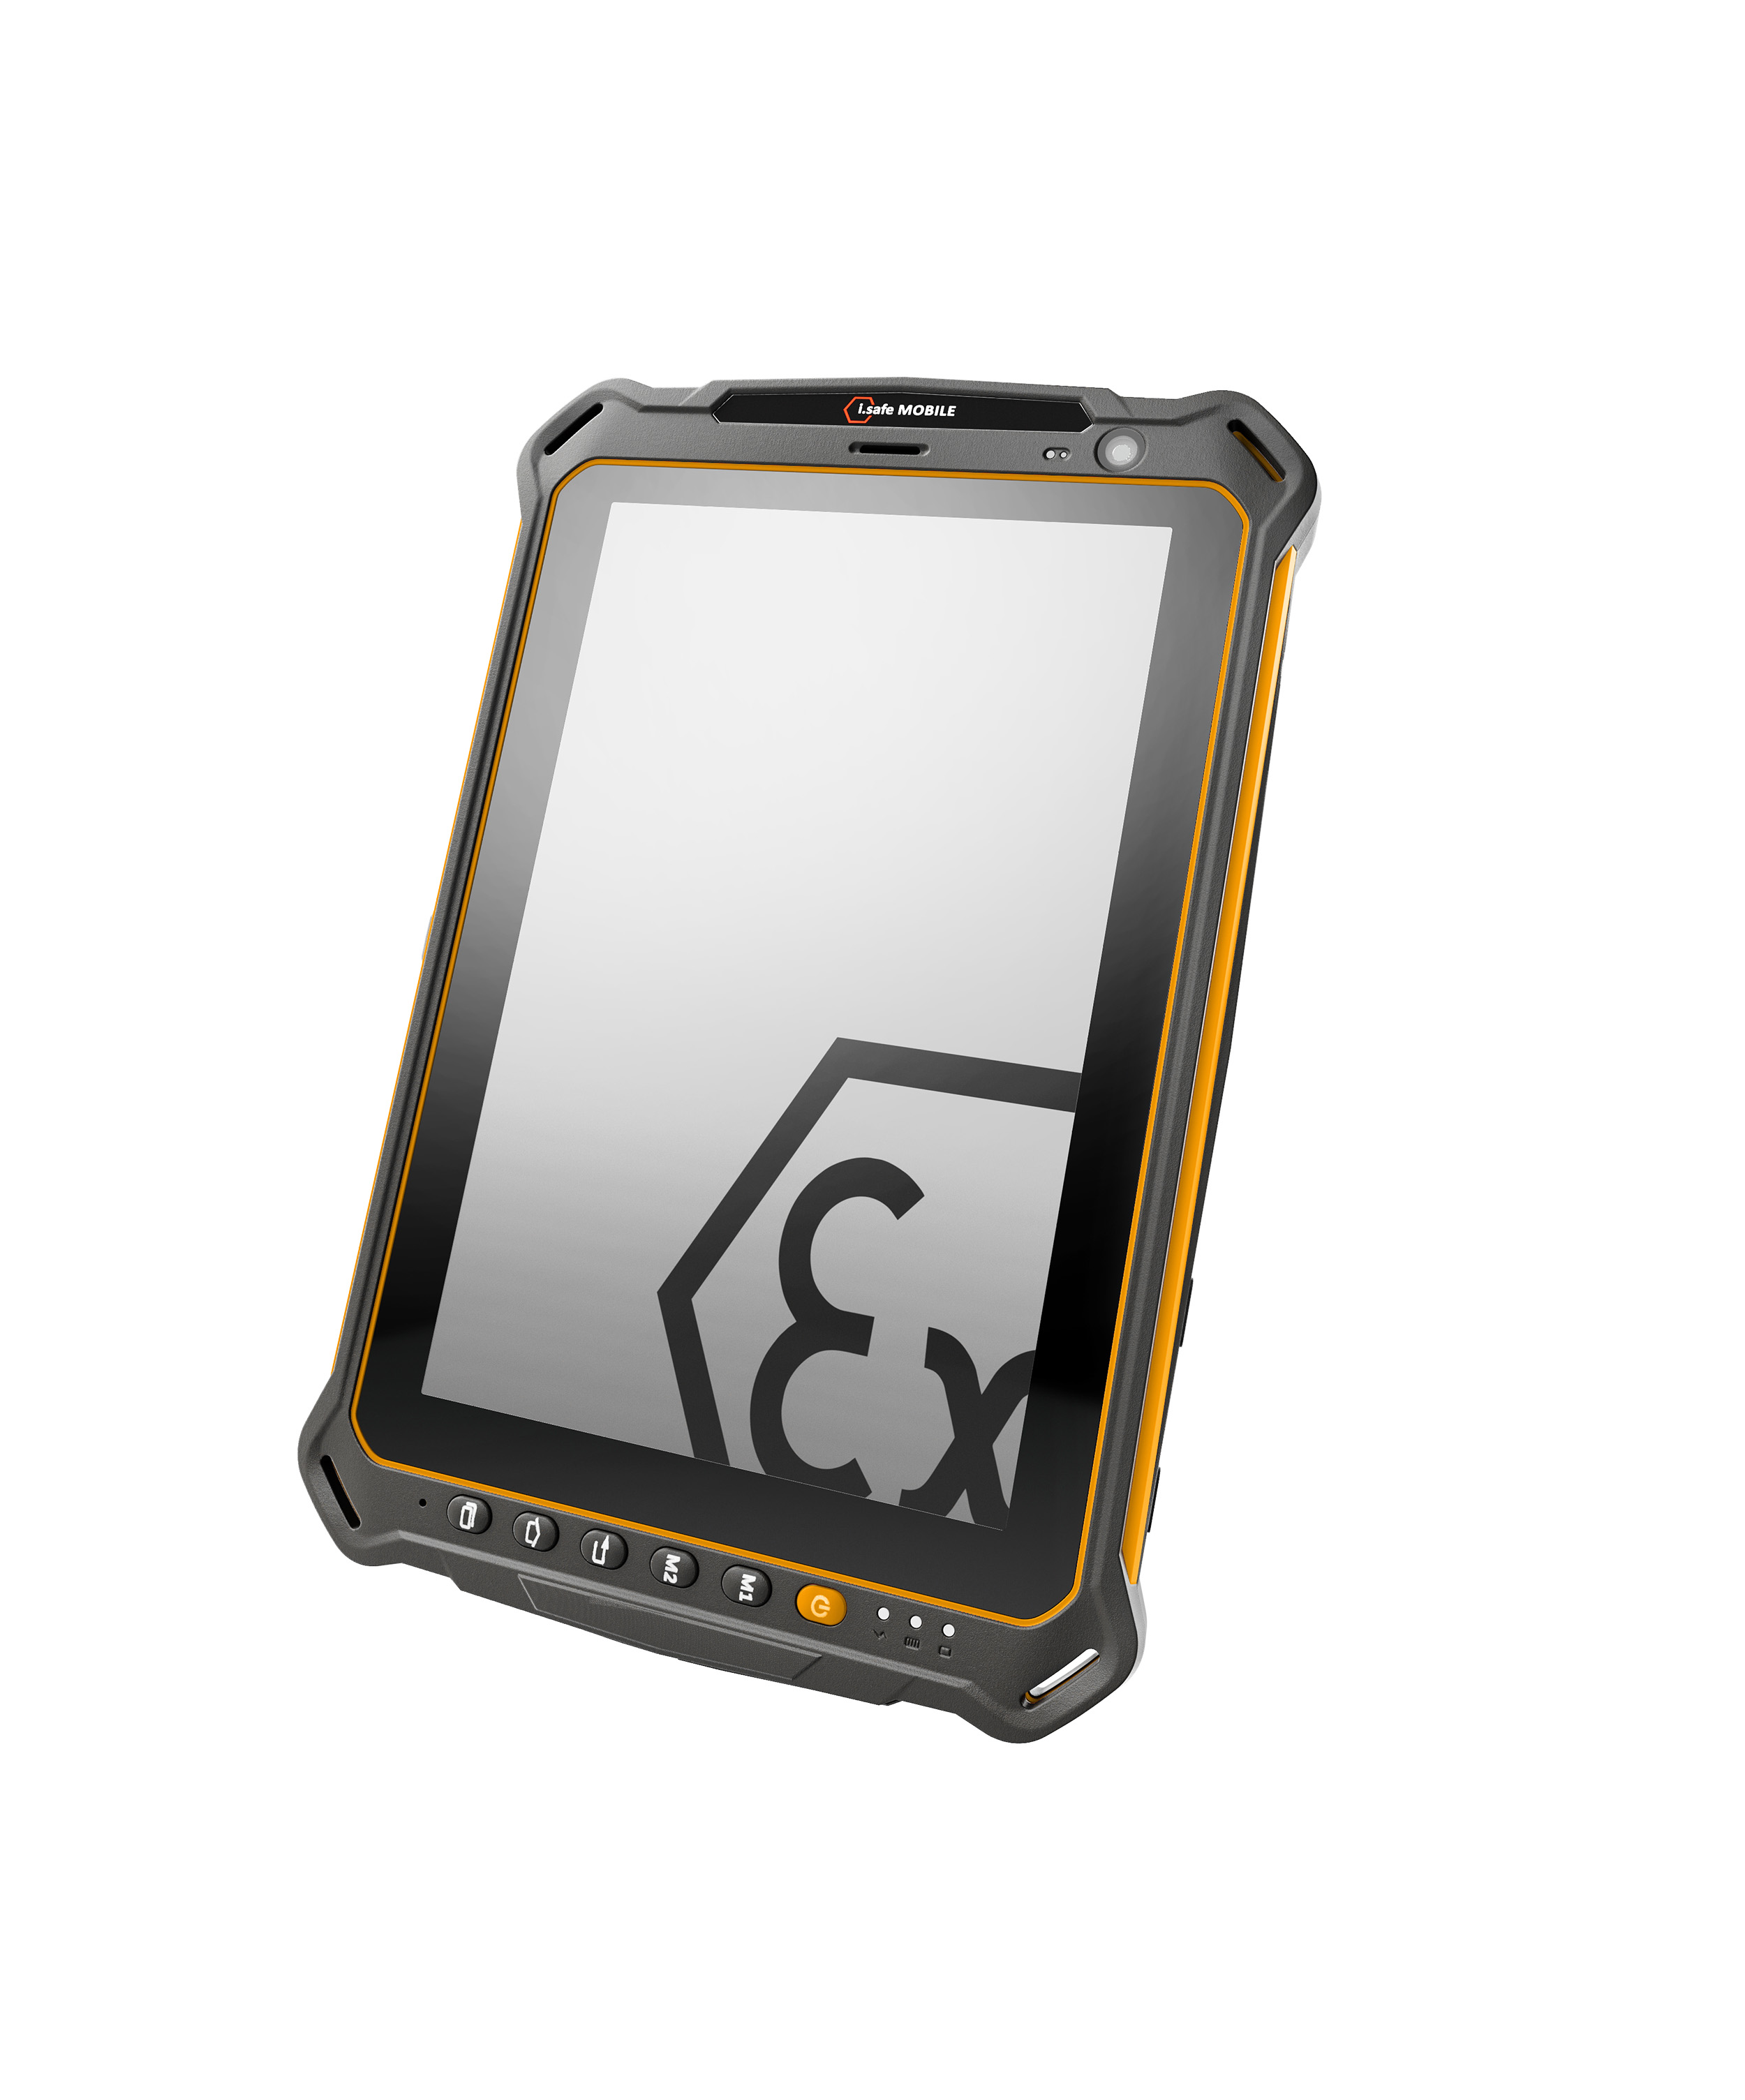 IS930.2 Tablet Set without camera